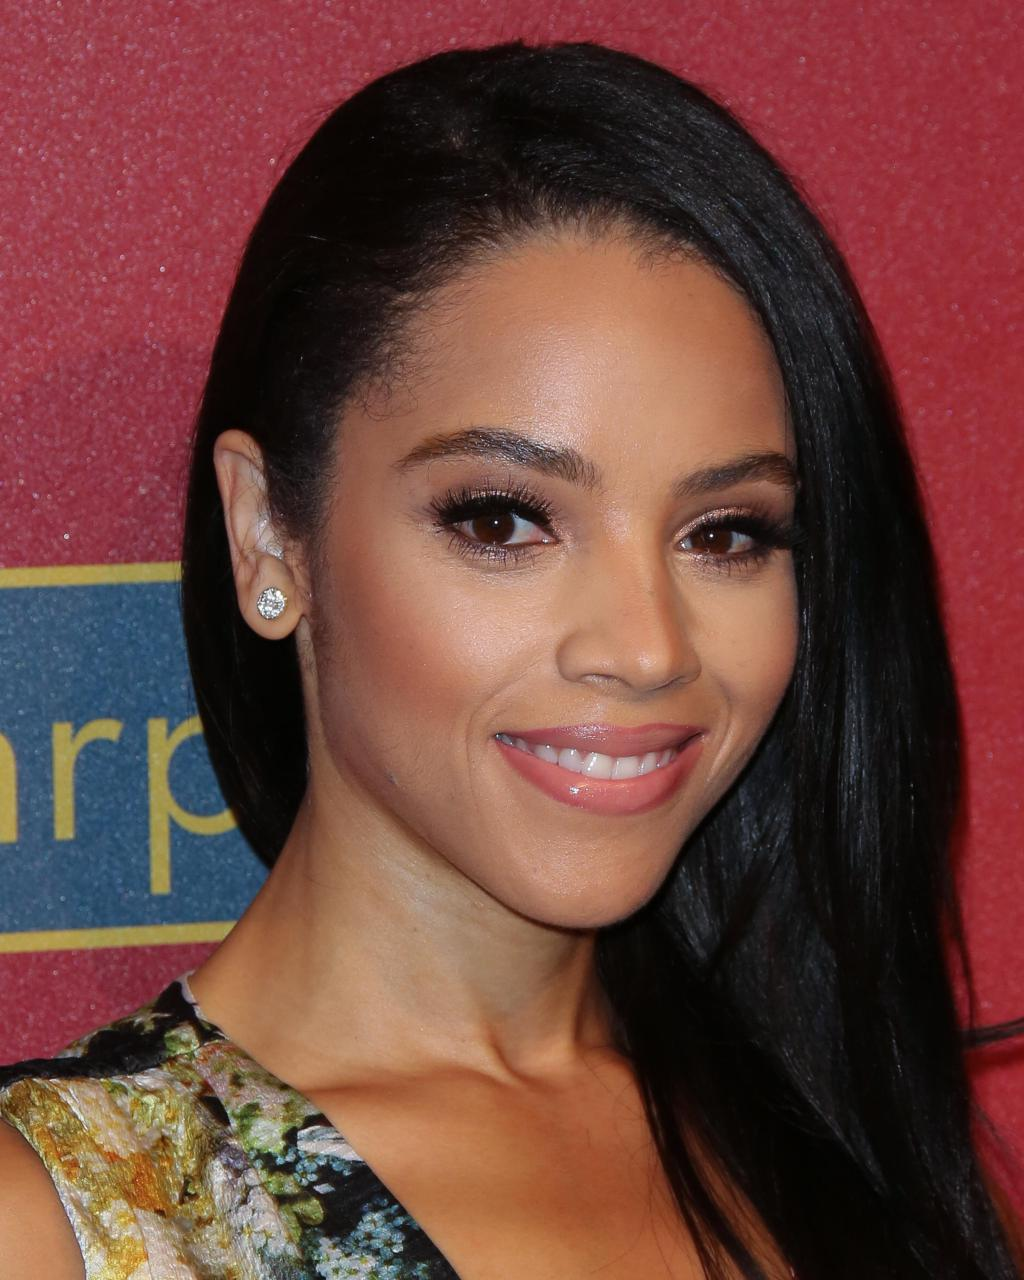 RT @GlobalGrind: In Case You're Curious: Here's a closer look at Beyonce's hot stepsister Bianca Lawson http://t.co/17XaLWK5yK http://t.co/…